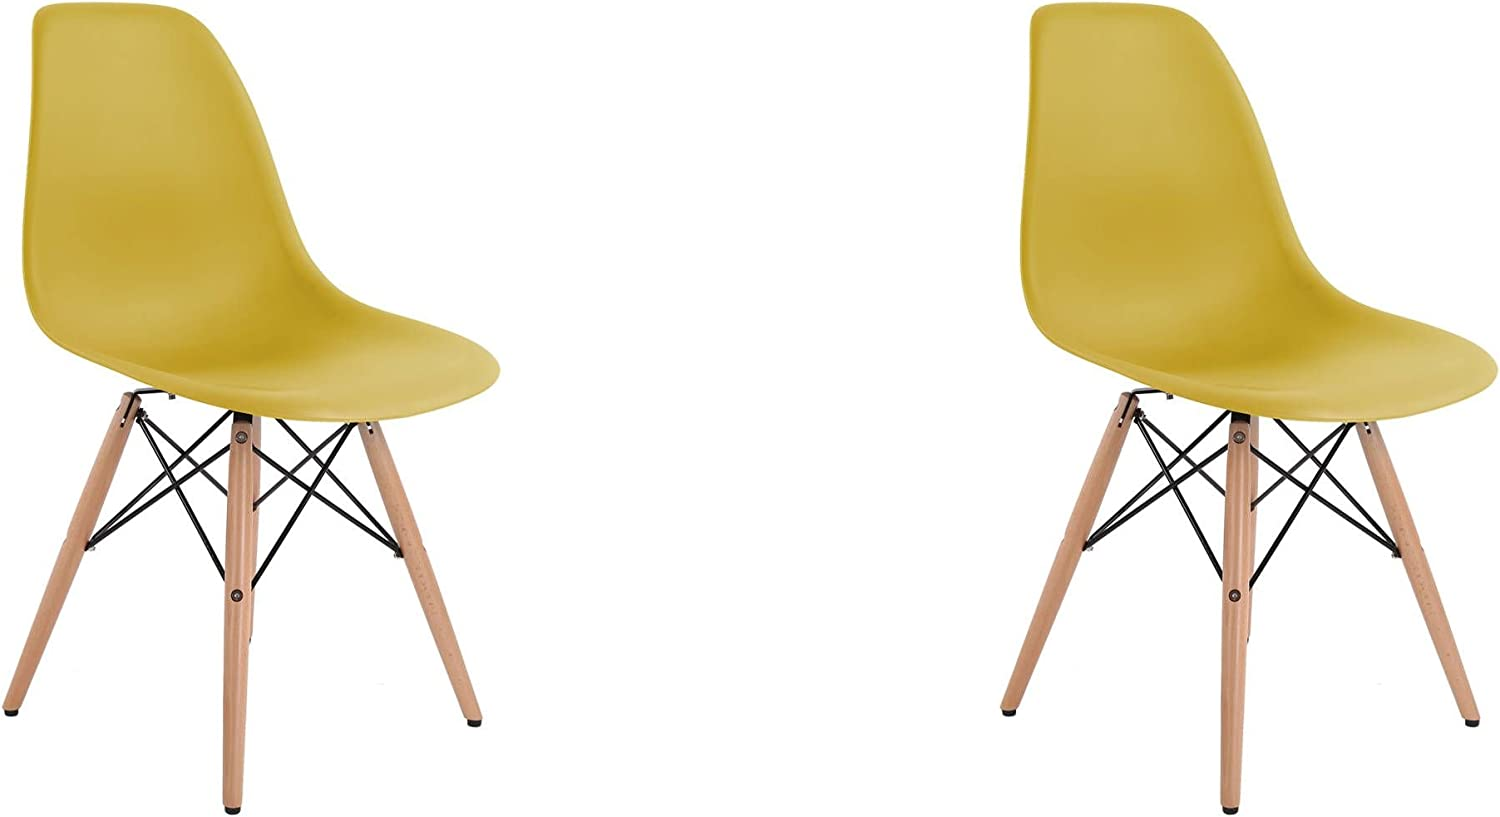 Meubles House S2-PC-0116W-M Eames Style Side Chair-Modern Eiffel Style Adult Dining Natural Wood Base-Mustard (Set of Two)